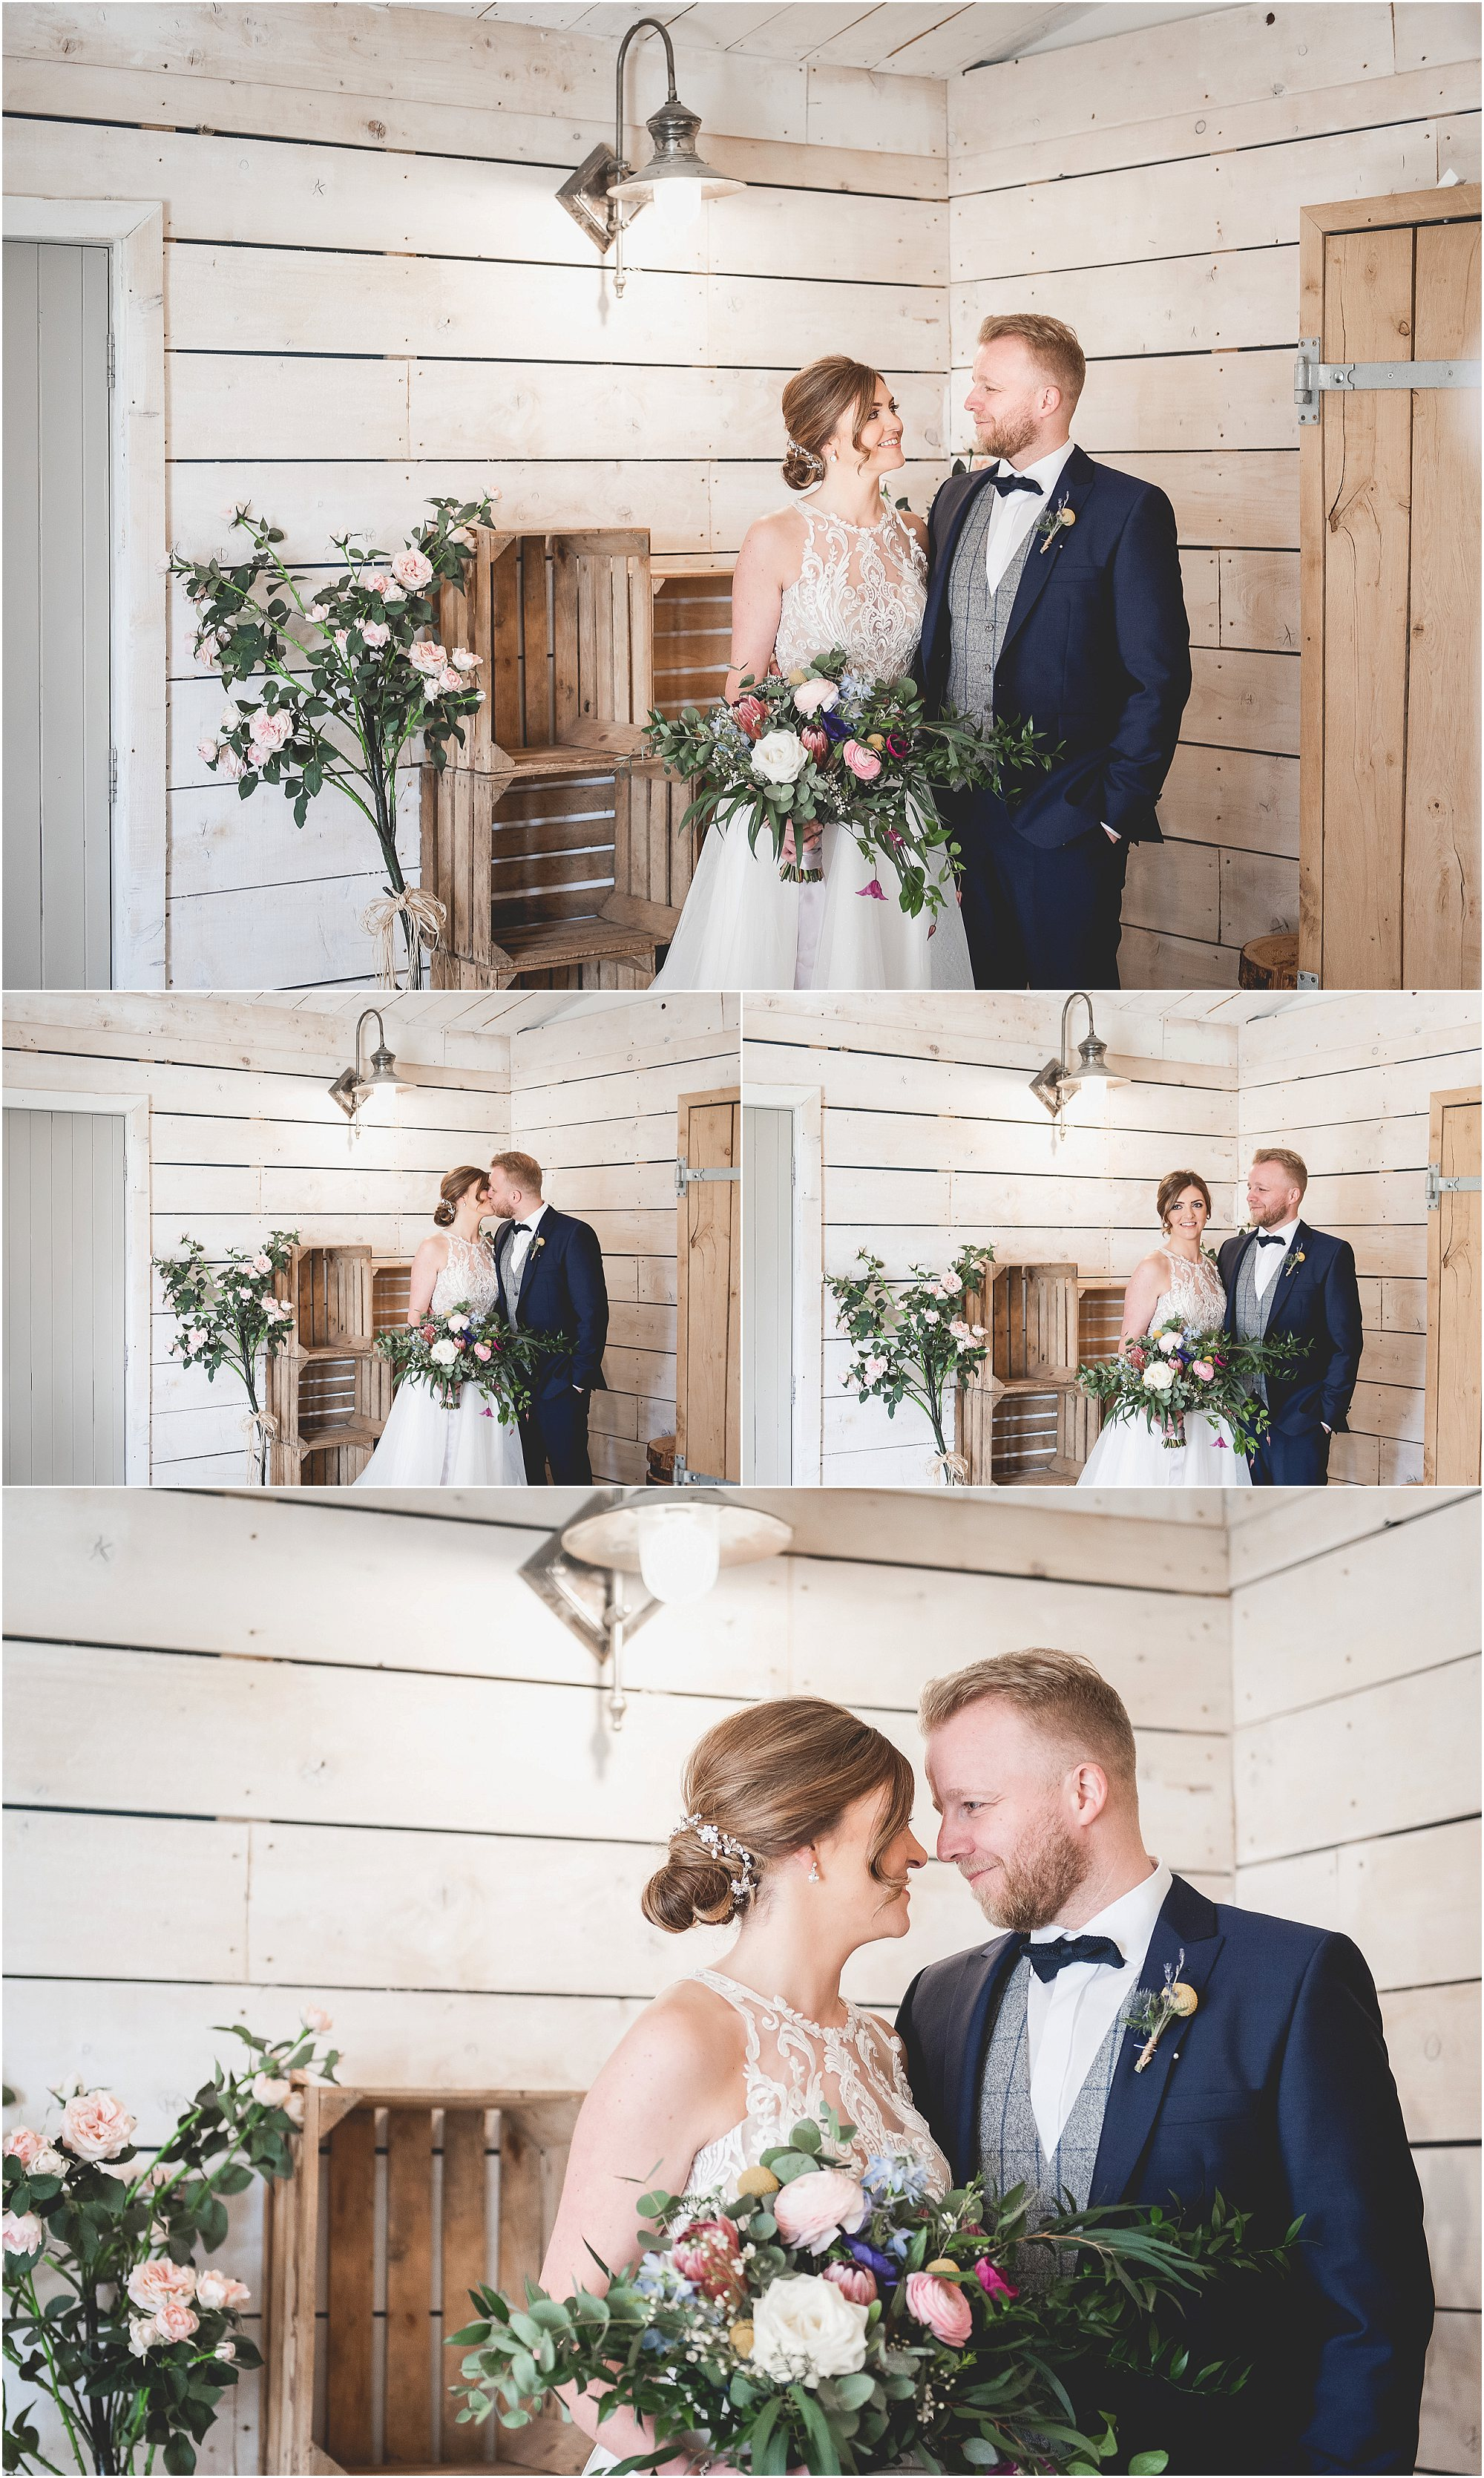 Bride & Groom share a moment after getting married at Bashall Barn